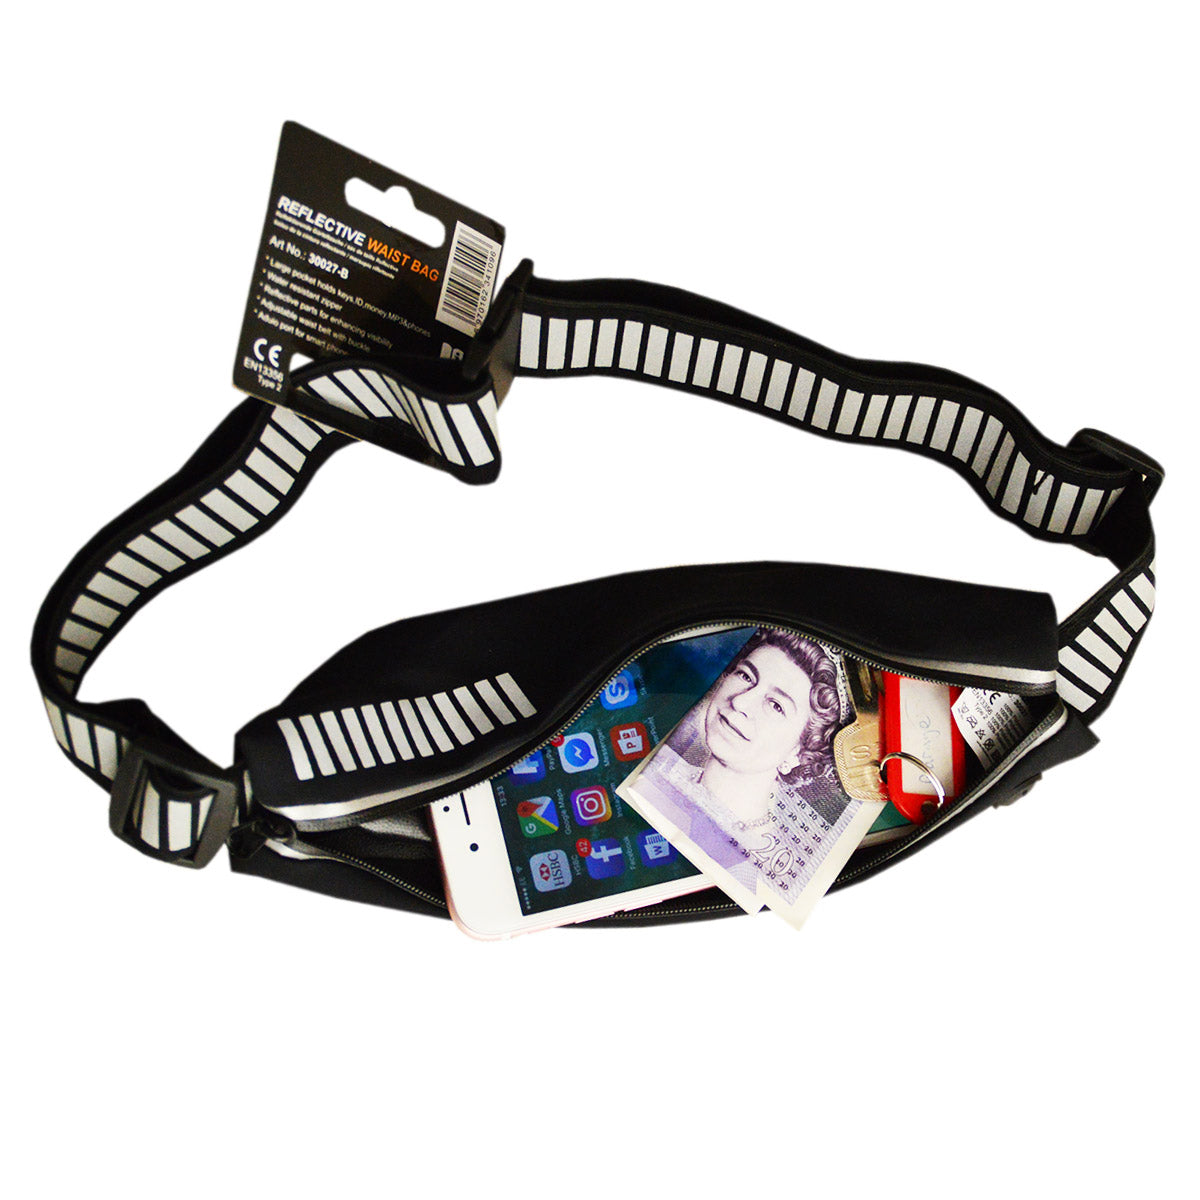 Salzmann 3M Scotchlite Reflective Waist Bag - Black